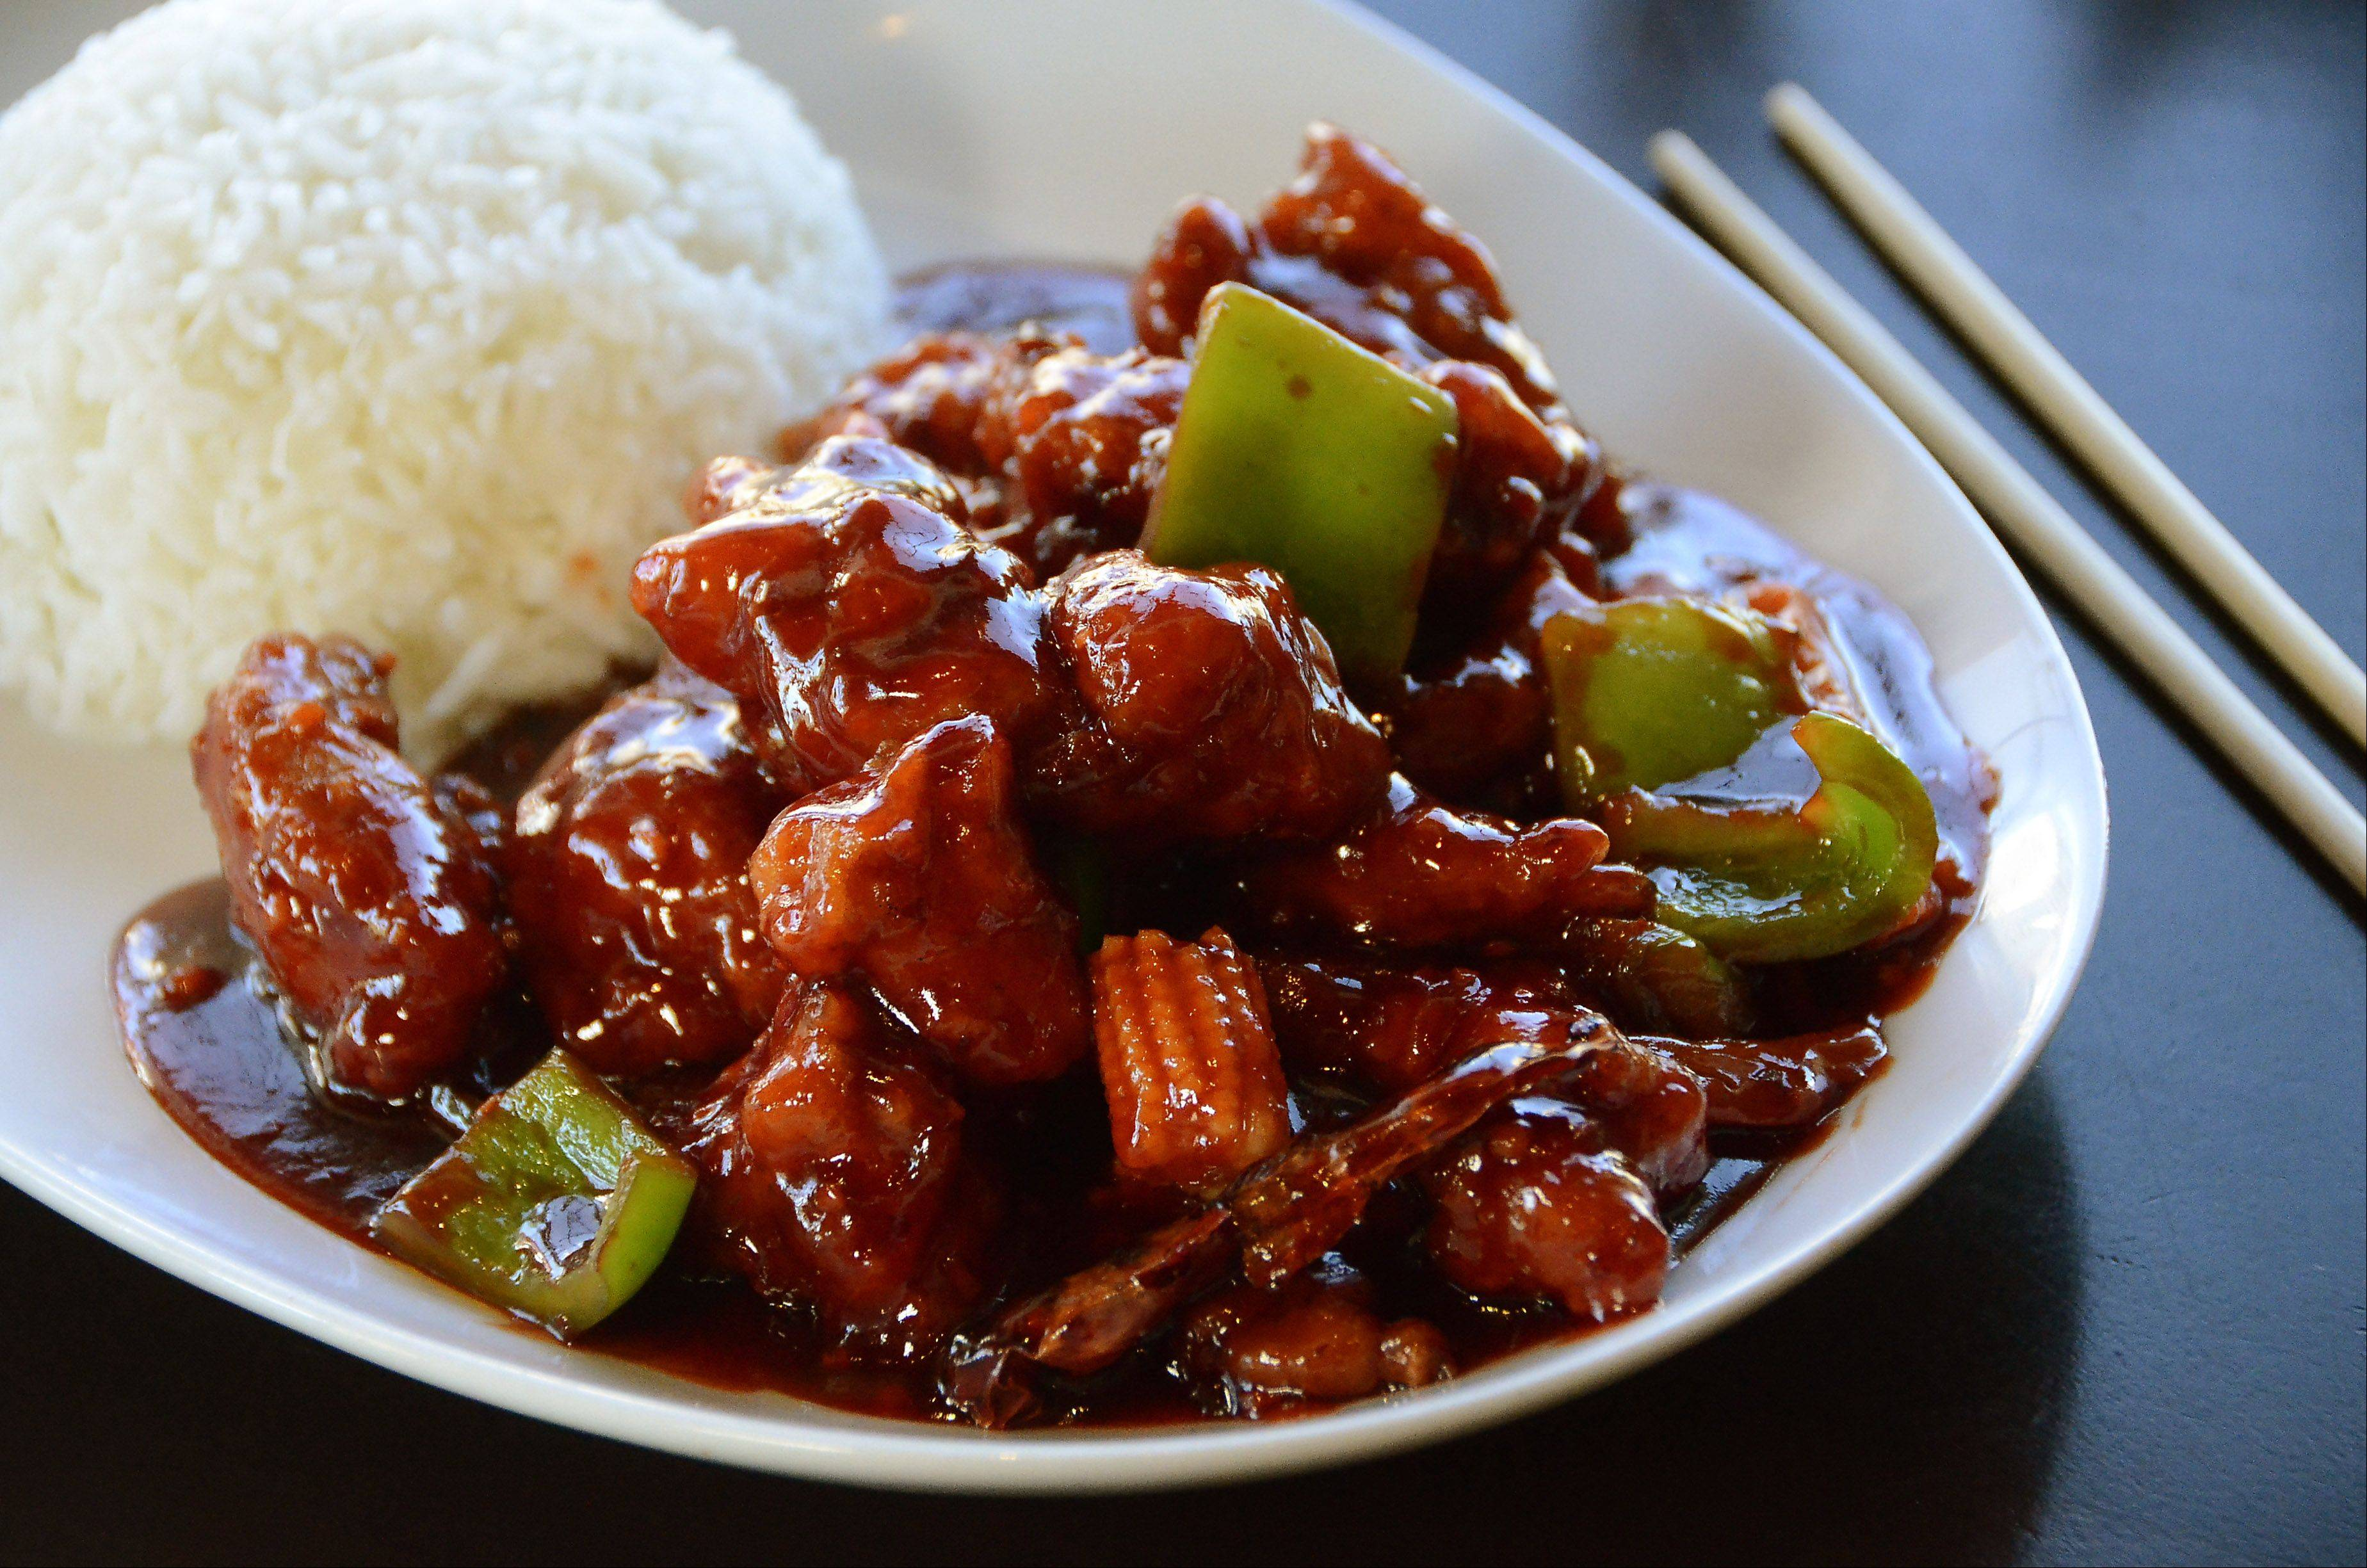 General Tso's chicken is full of crunchy vegetables and a sweet and spicy sauce at Bao Gourmet in Bartlett.